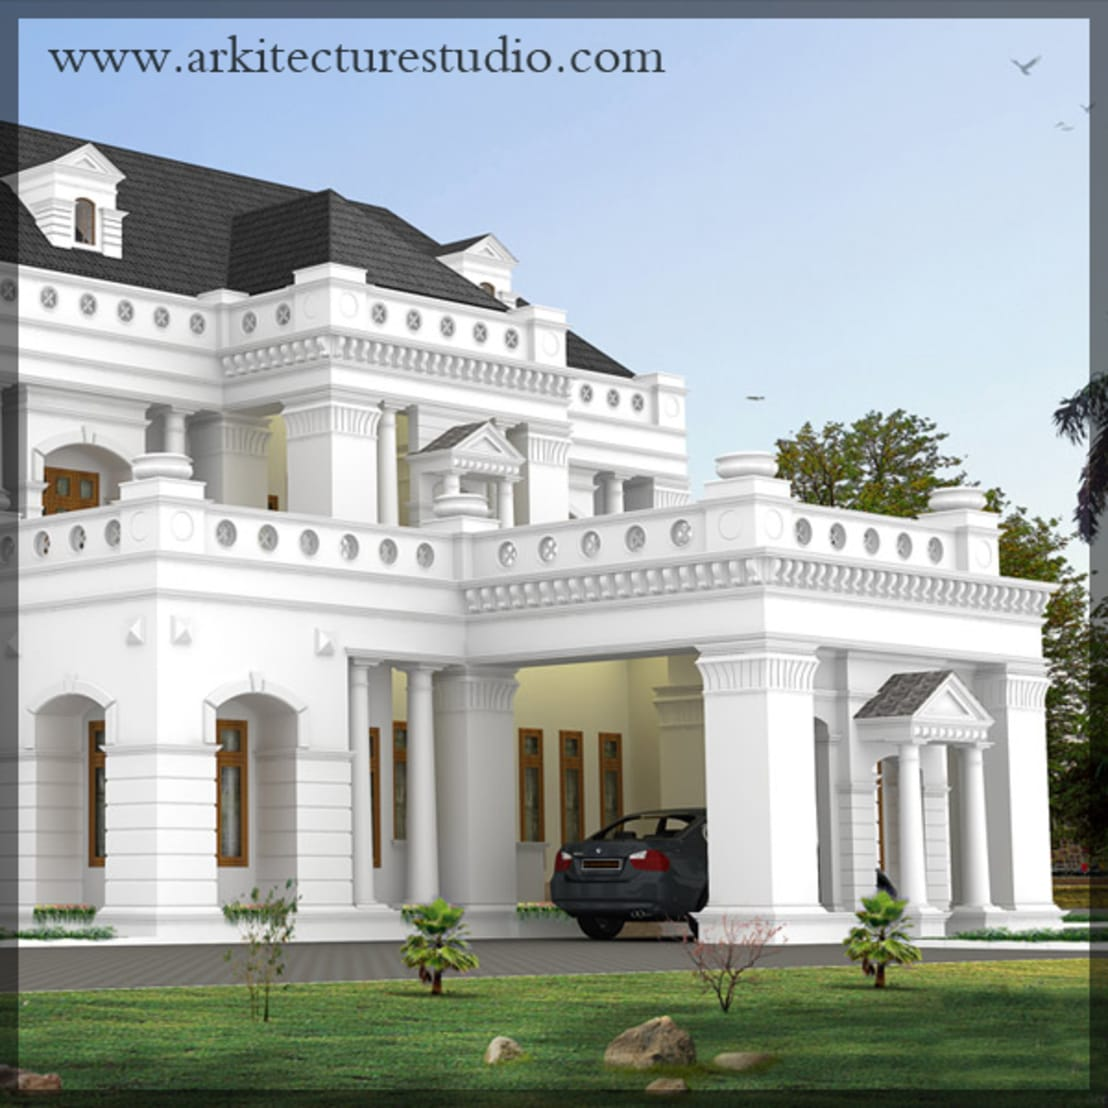 Colonial Style Luxury Indian Home Design Leading Architects In Kerala Arkitecture Studio By